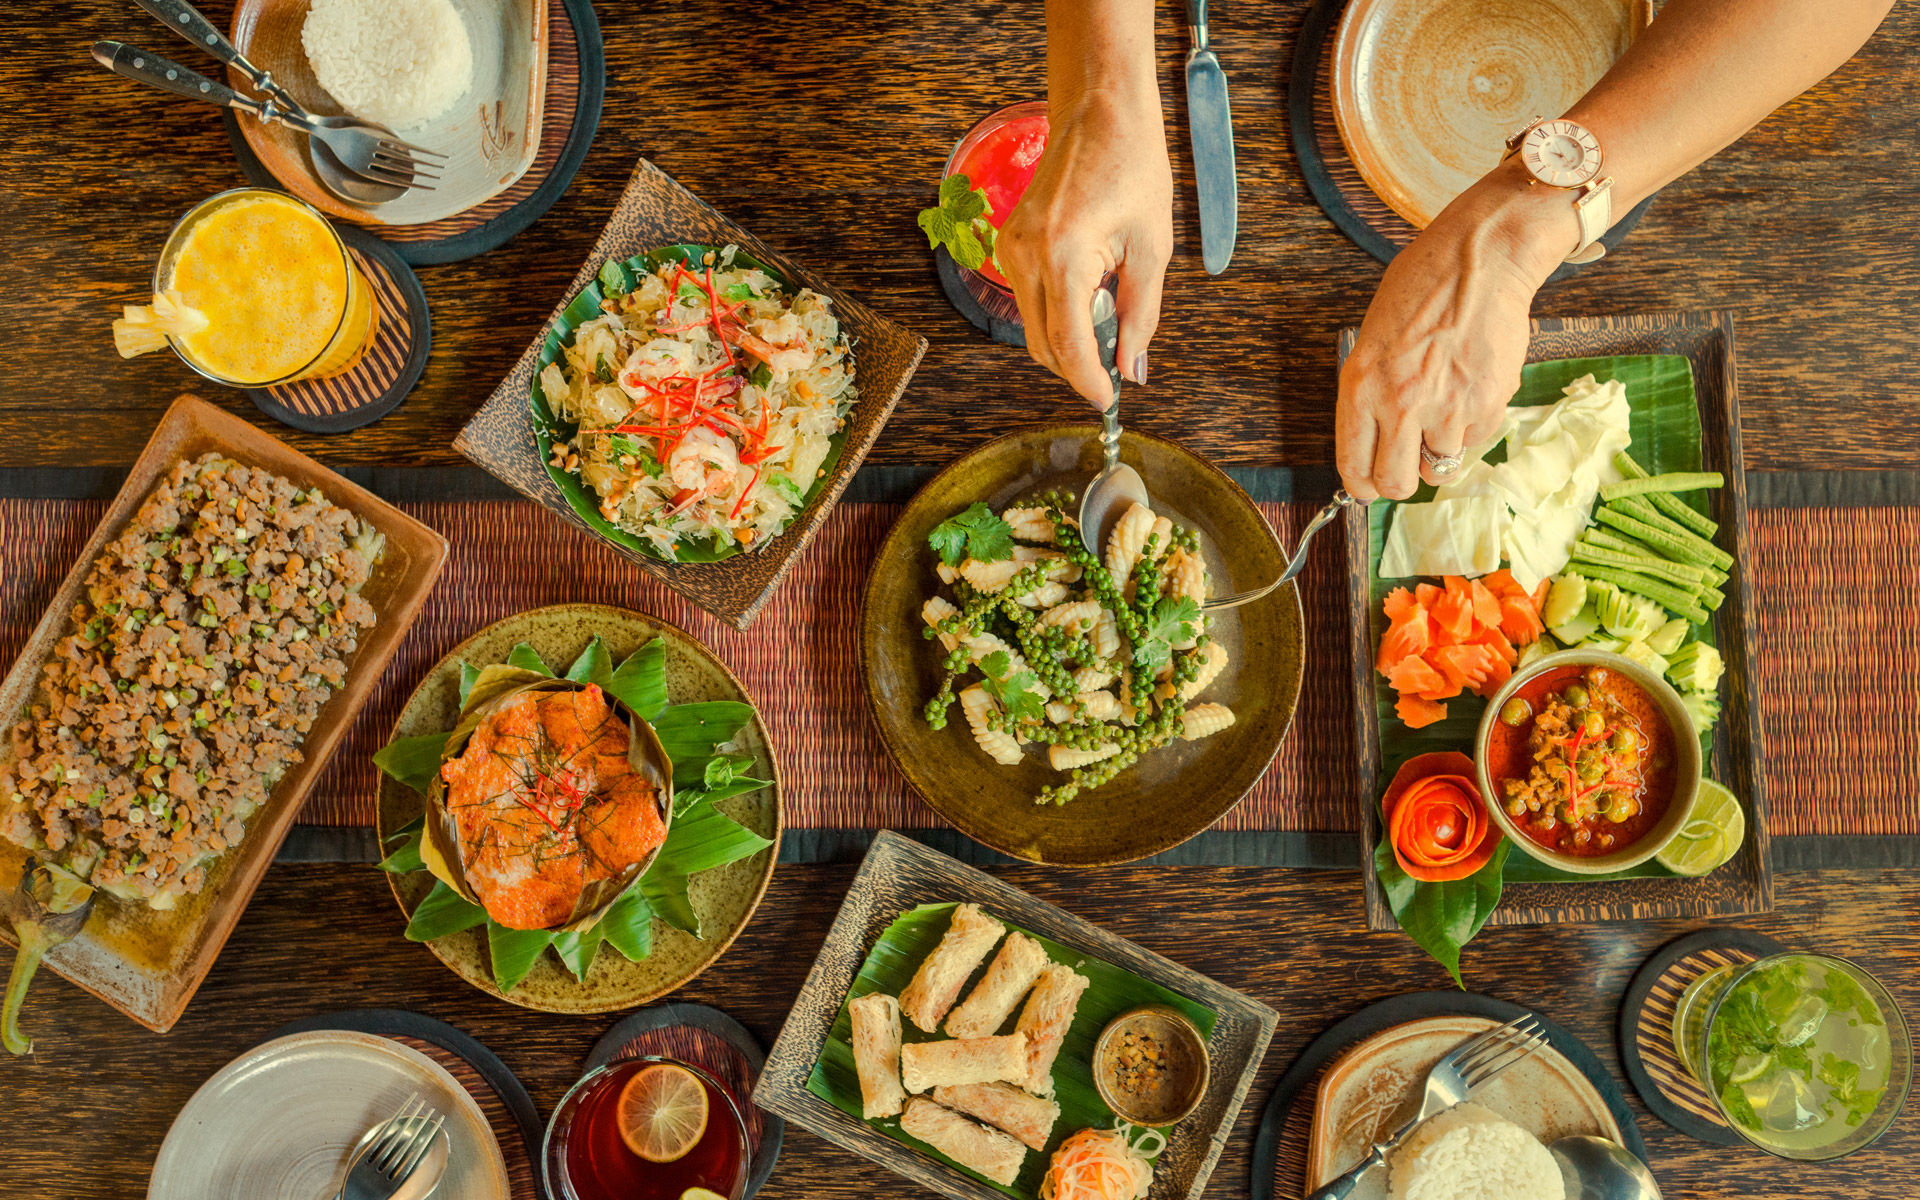 Shared Plates. The Sugar Palm Restaurant & Bar, Khmer food at its best in Phnom Penh and Siem Reap, Cambodia.